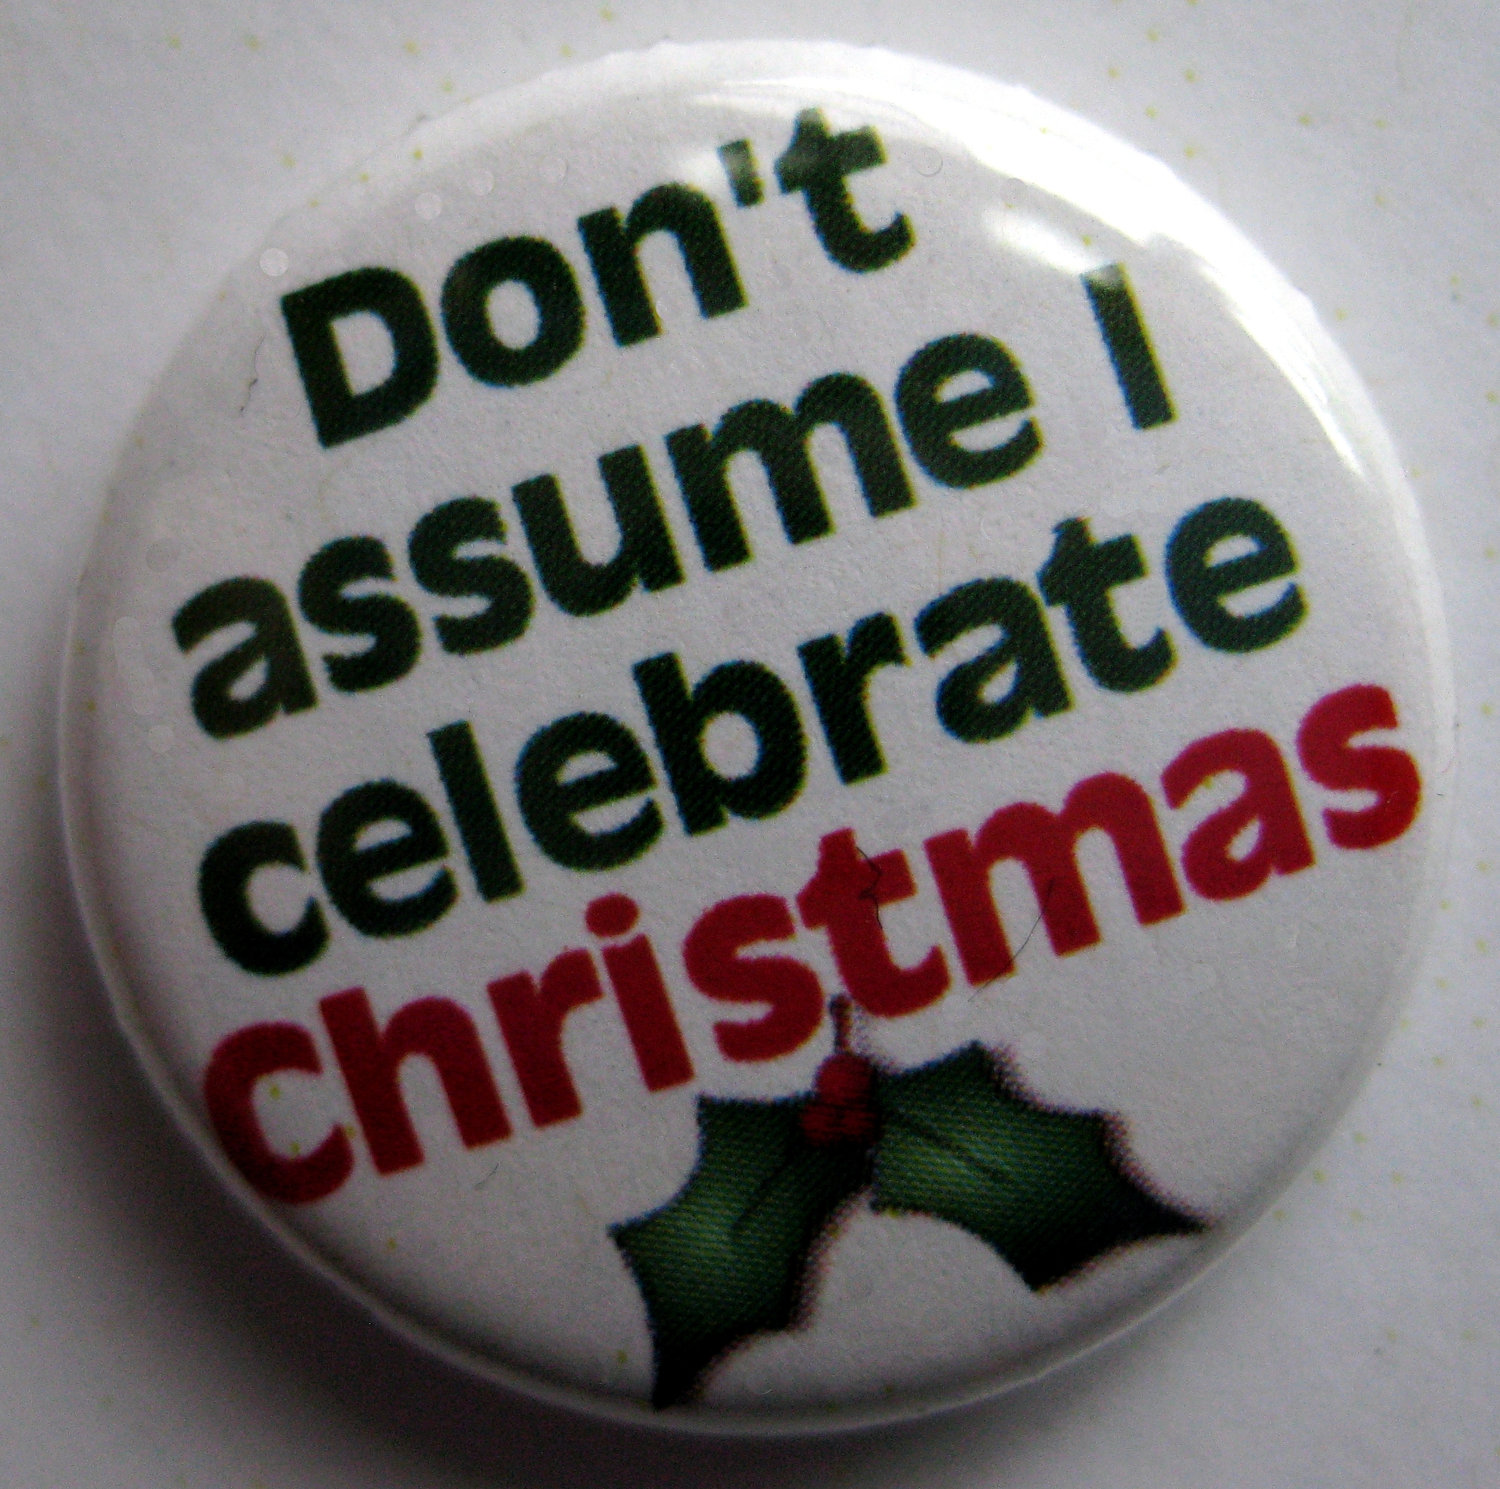 Portland Button Works | Don't assume I celebrate Christmas 1 ...